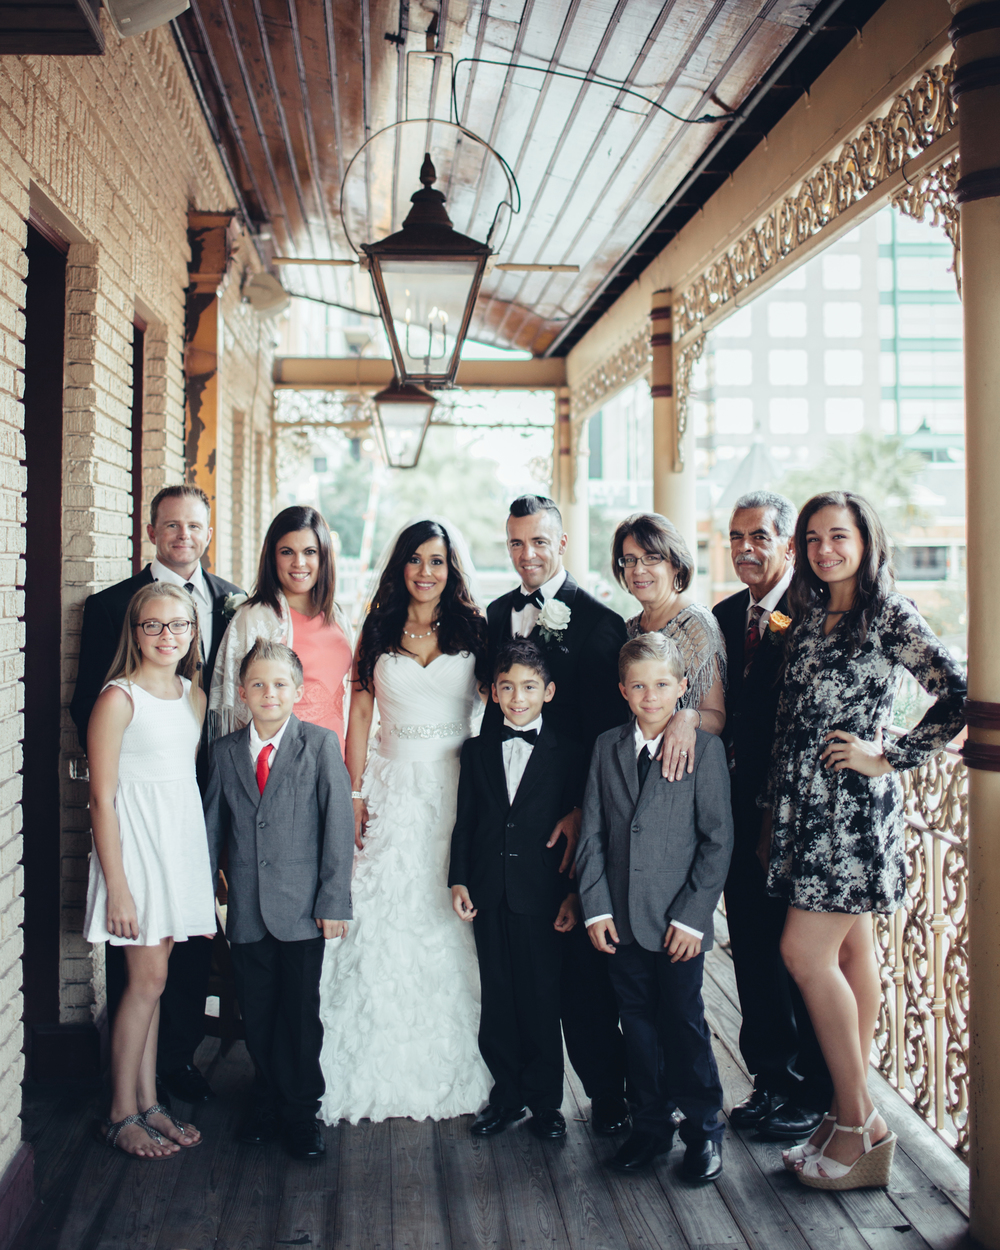 wedding 2015 (230 of 270)final.jpg